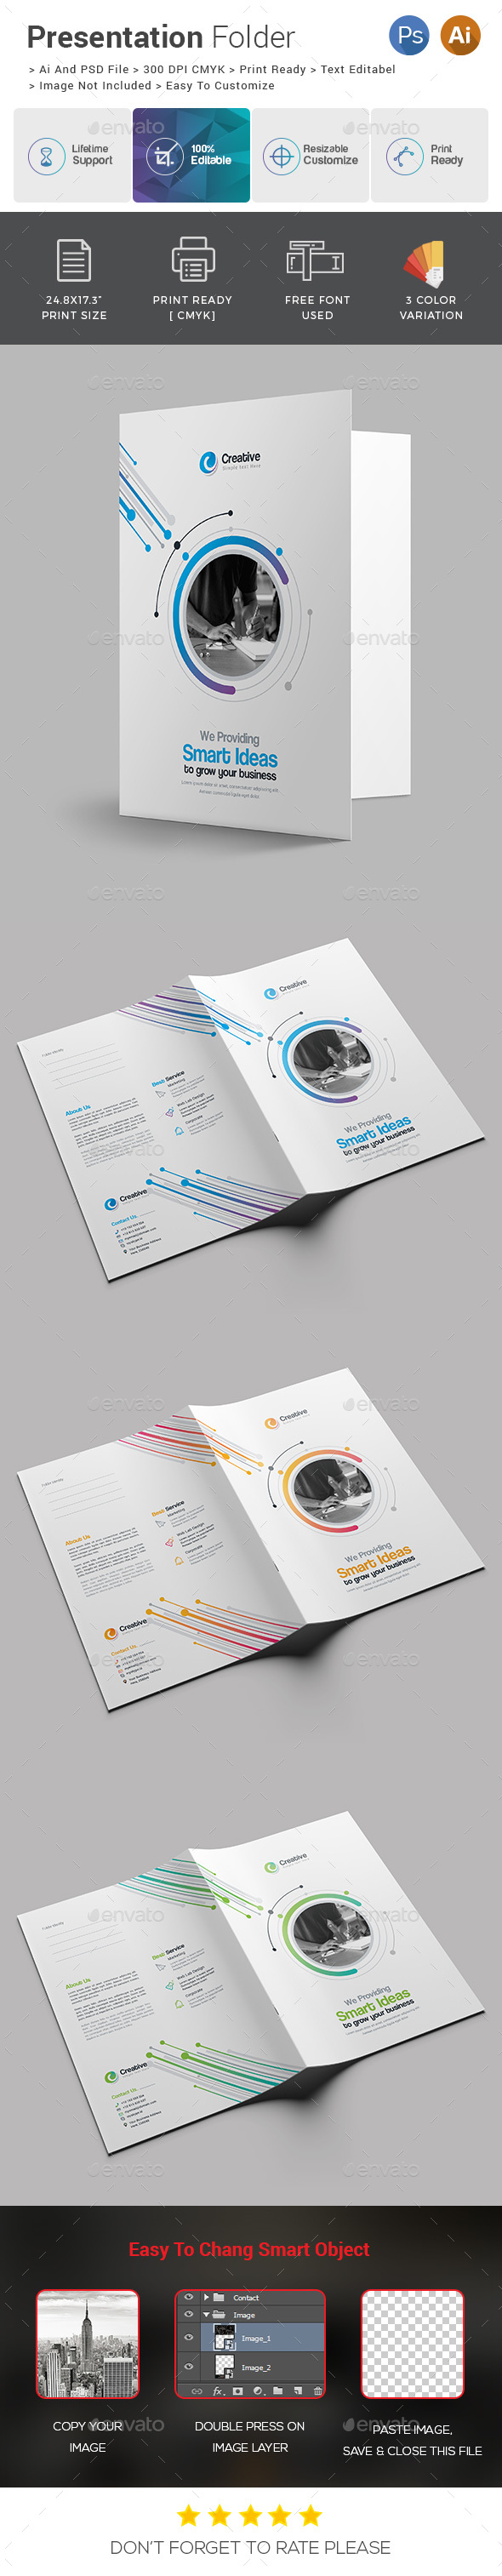 Presentation Folder - Stationery Print Templates